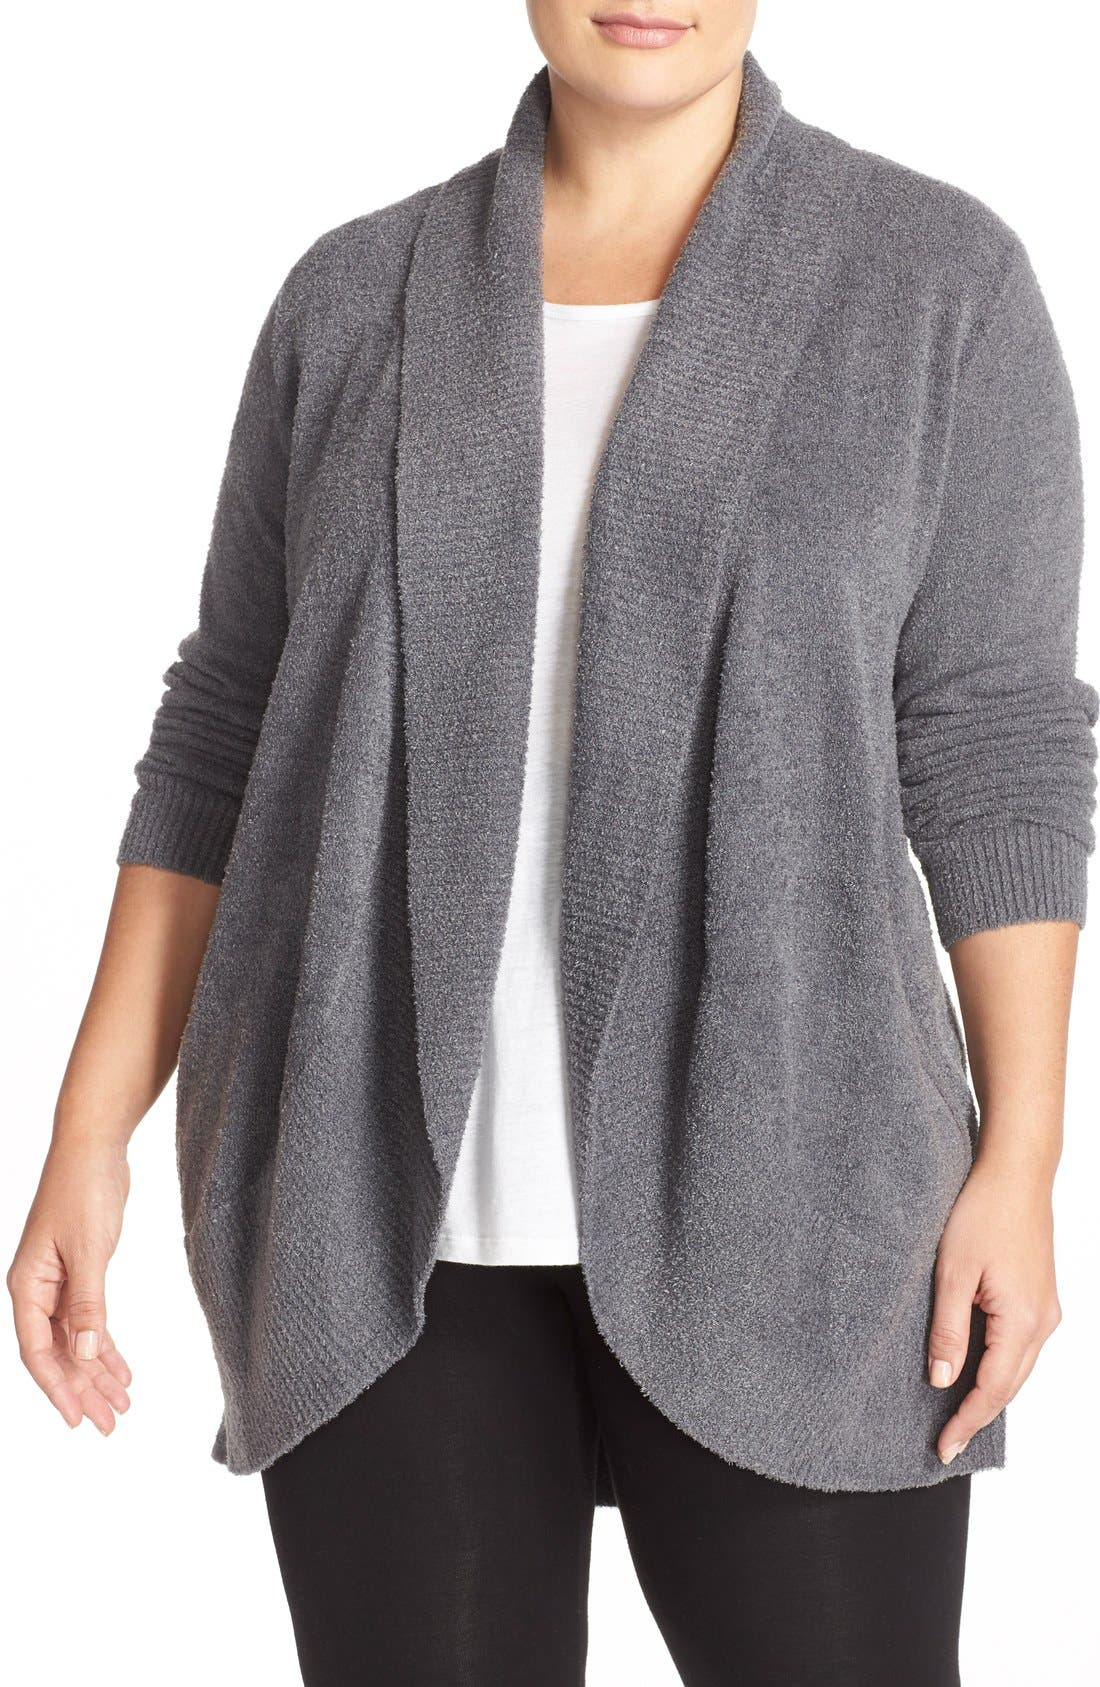 Main Image - Barefoot Dreams® CozyChic Lite® Circle Cardigan (Plus Size)